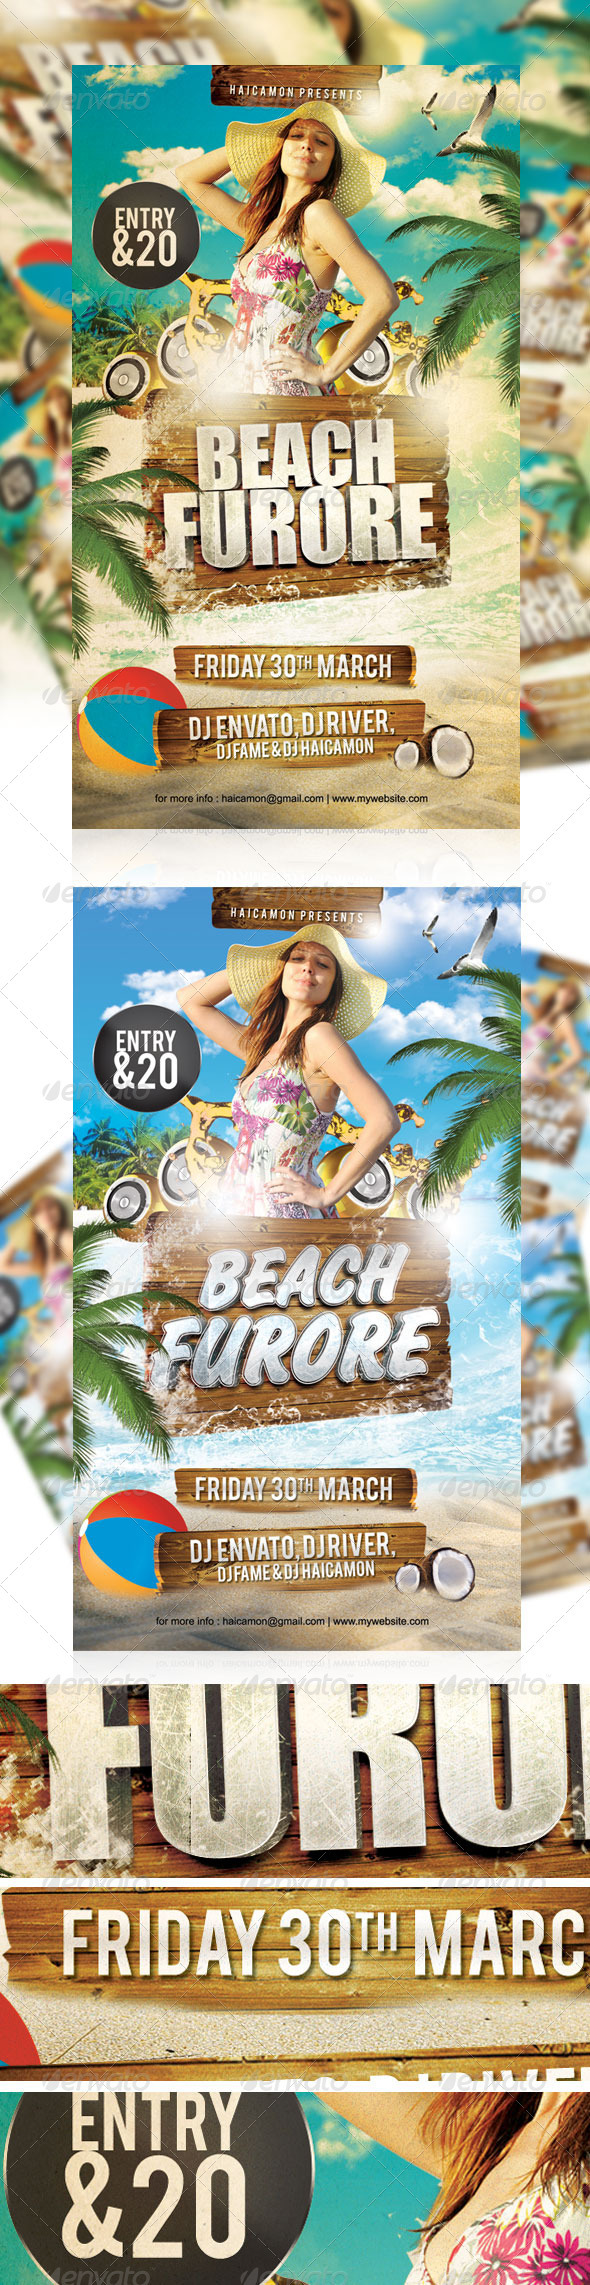 Beach Furore Party Flyer - Clubs & Parties Events